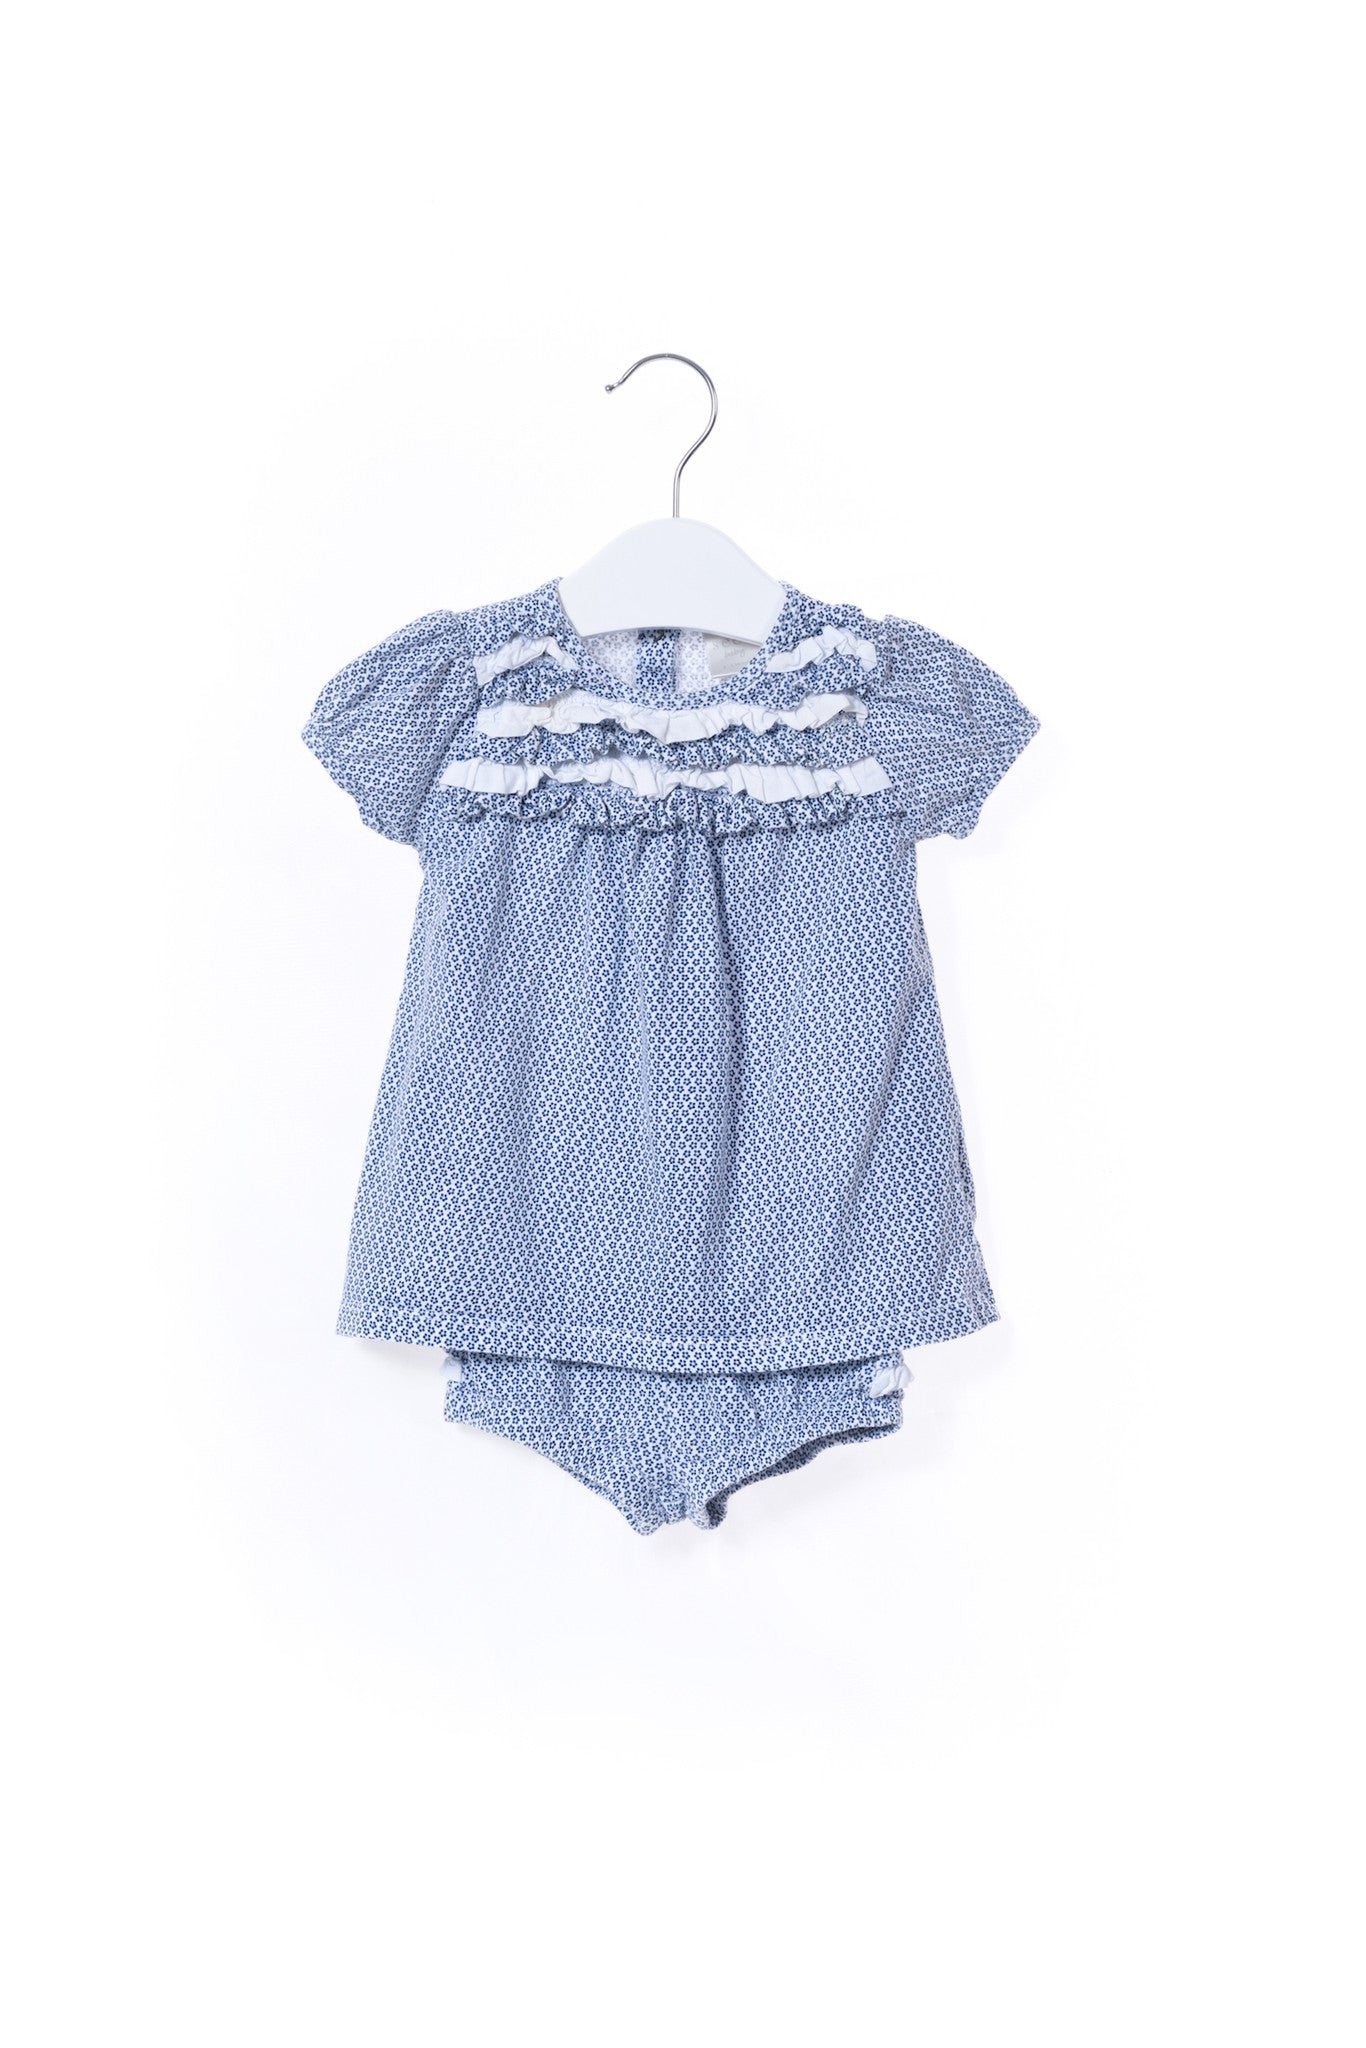 10001070 Seed Baby~Top and Bloomer 3-6M at Retykle